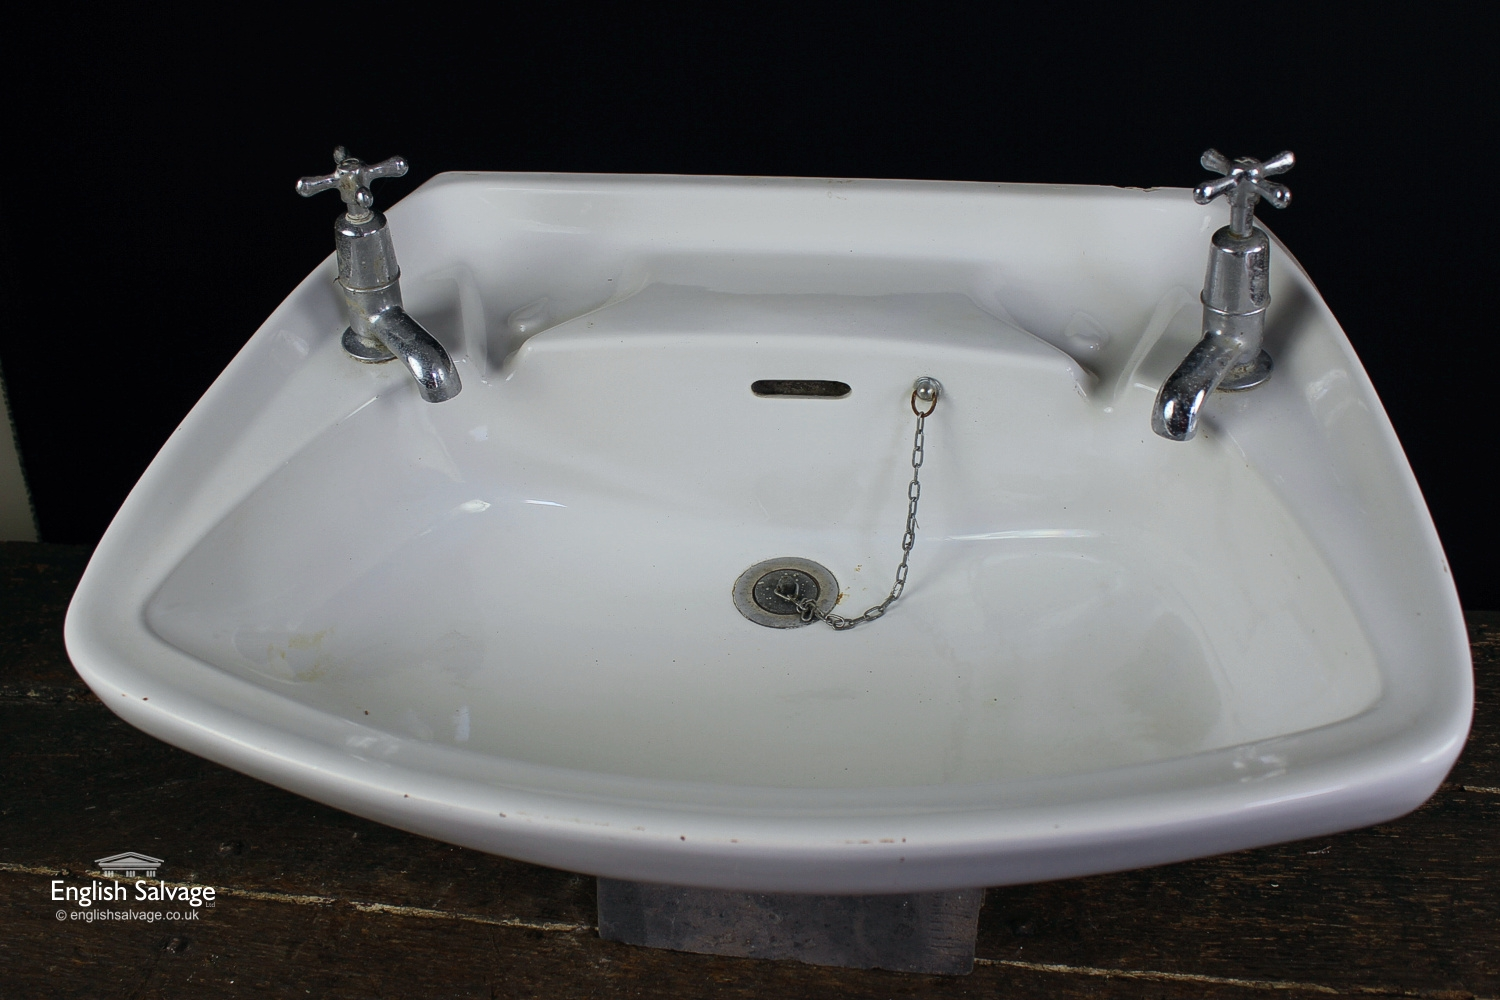 Royal Doulton Sink